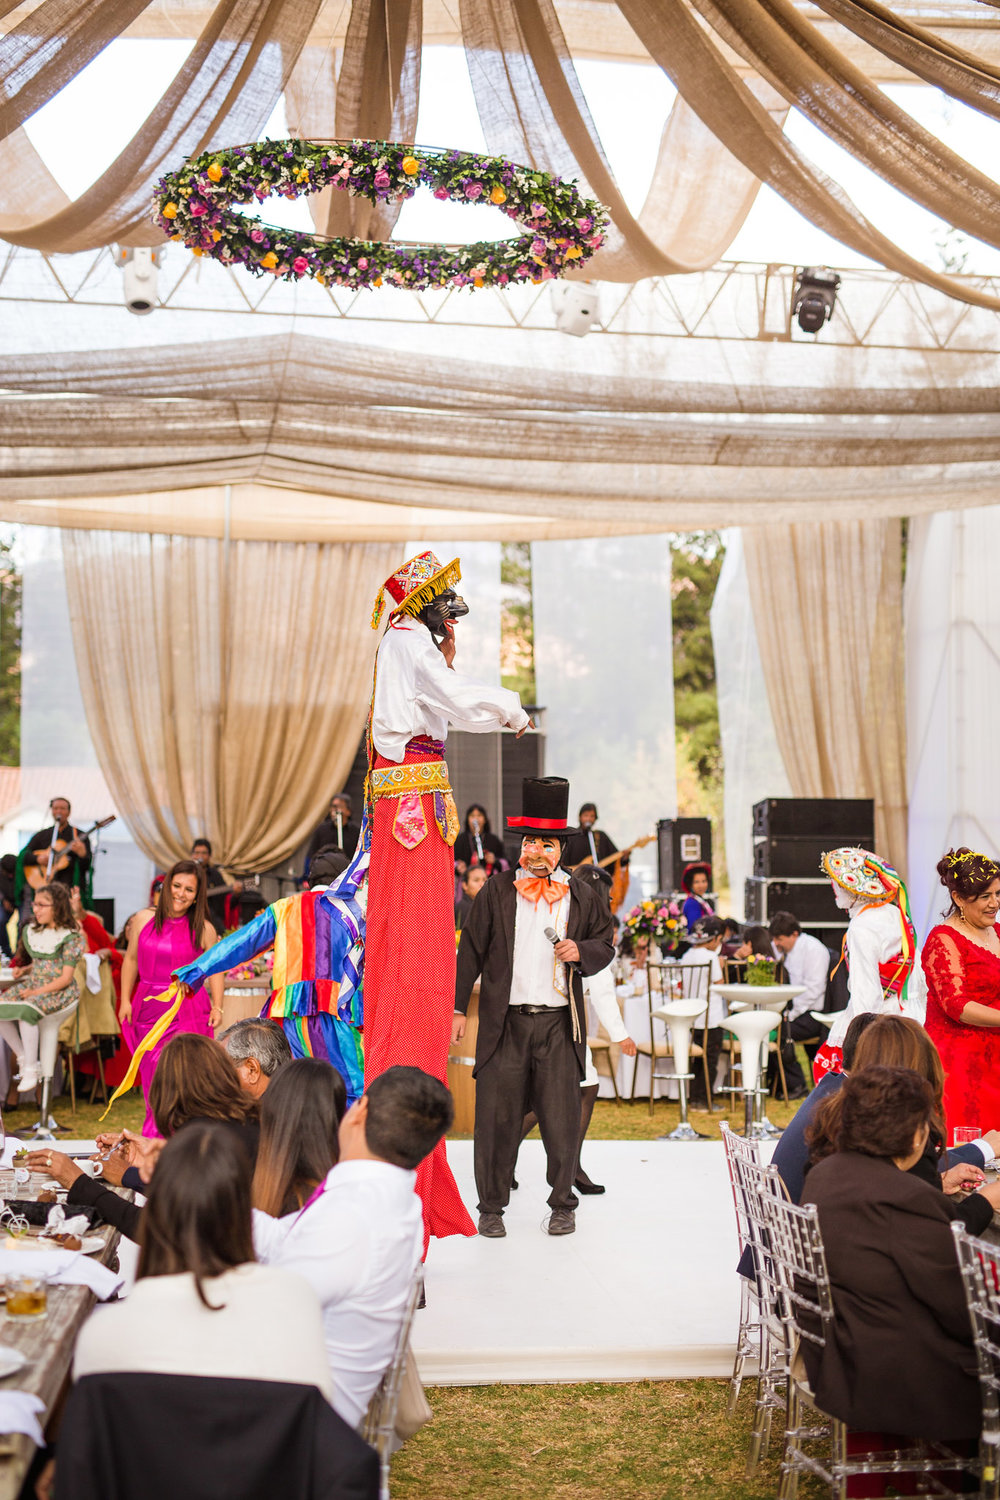 Wedding-Travellers-Destination-Wedding-Peru-Cusco-Hacienda-Sarapampa-Sacred-Valley-traditional-costume-entertainment